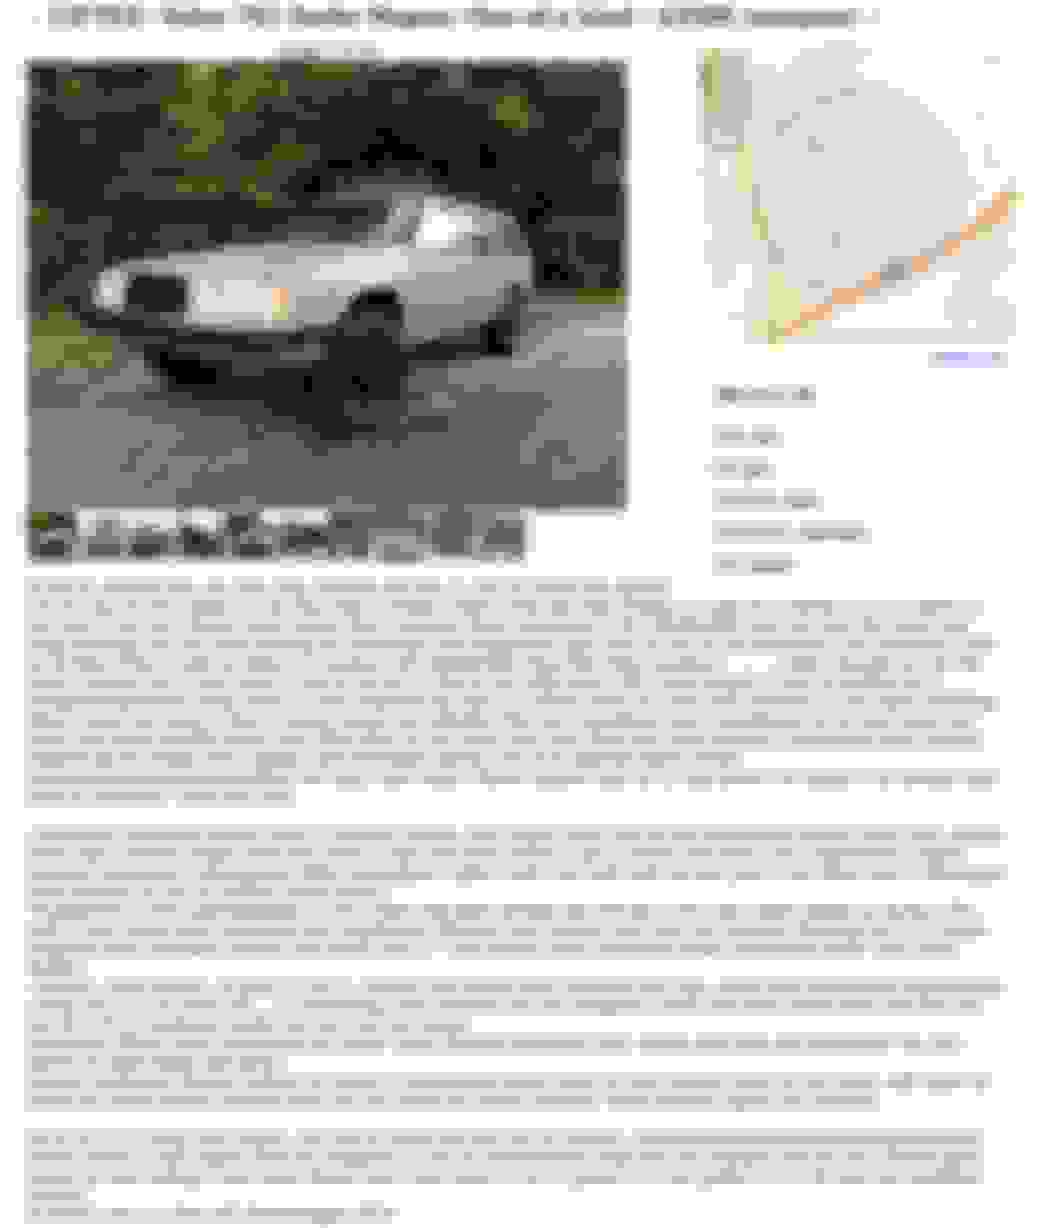 Craigslist Unique Finds Thread (pls scrape) - Page 88 - Miata Turbo